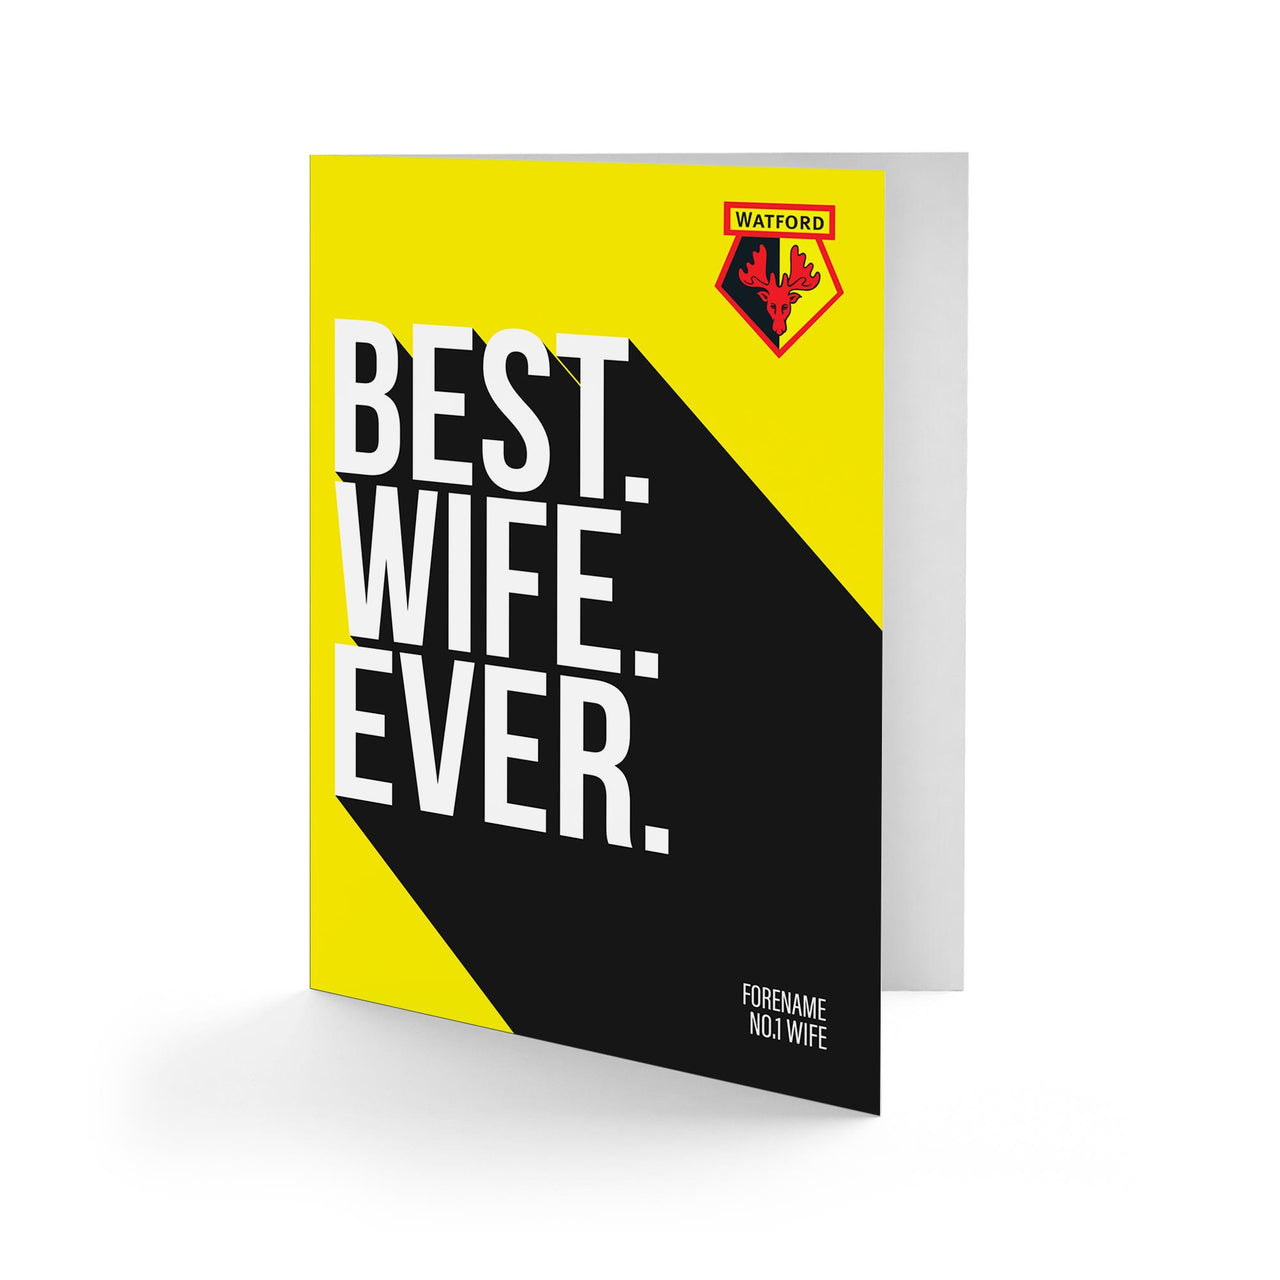 Watford Best Wife Ever Card